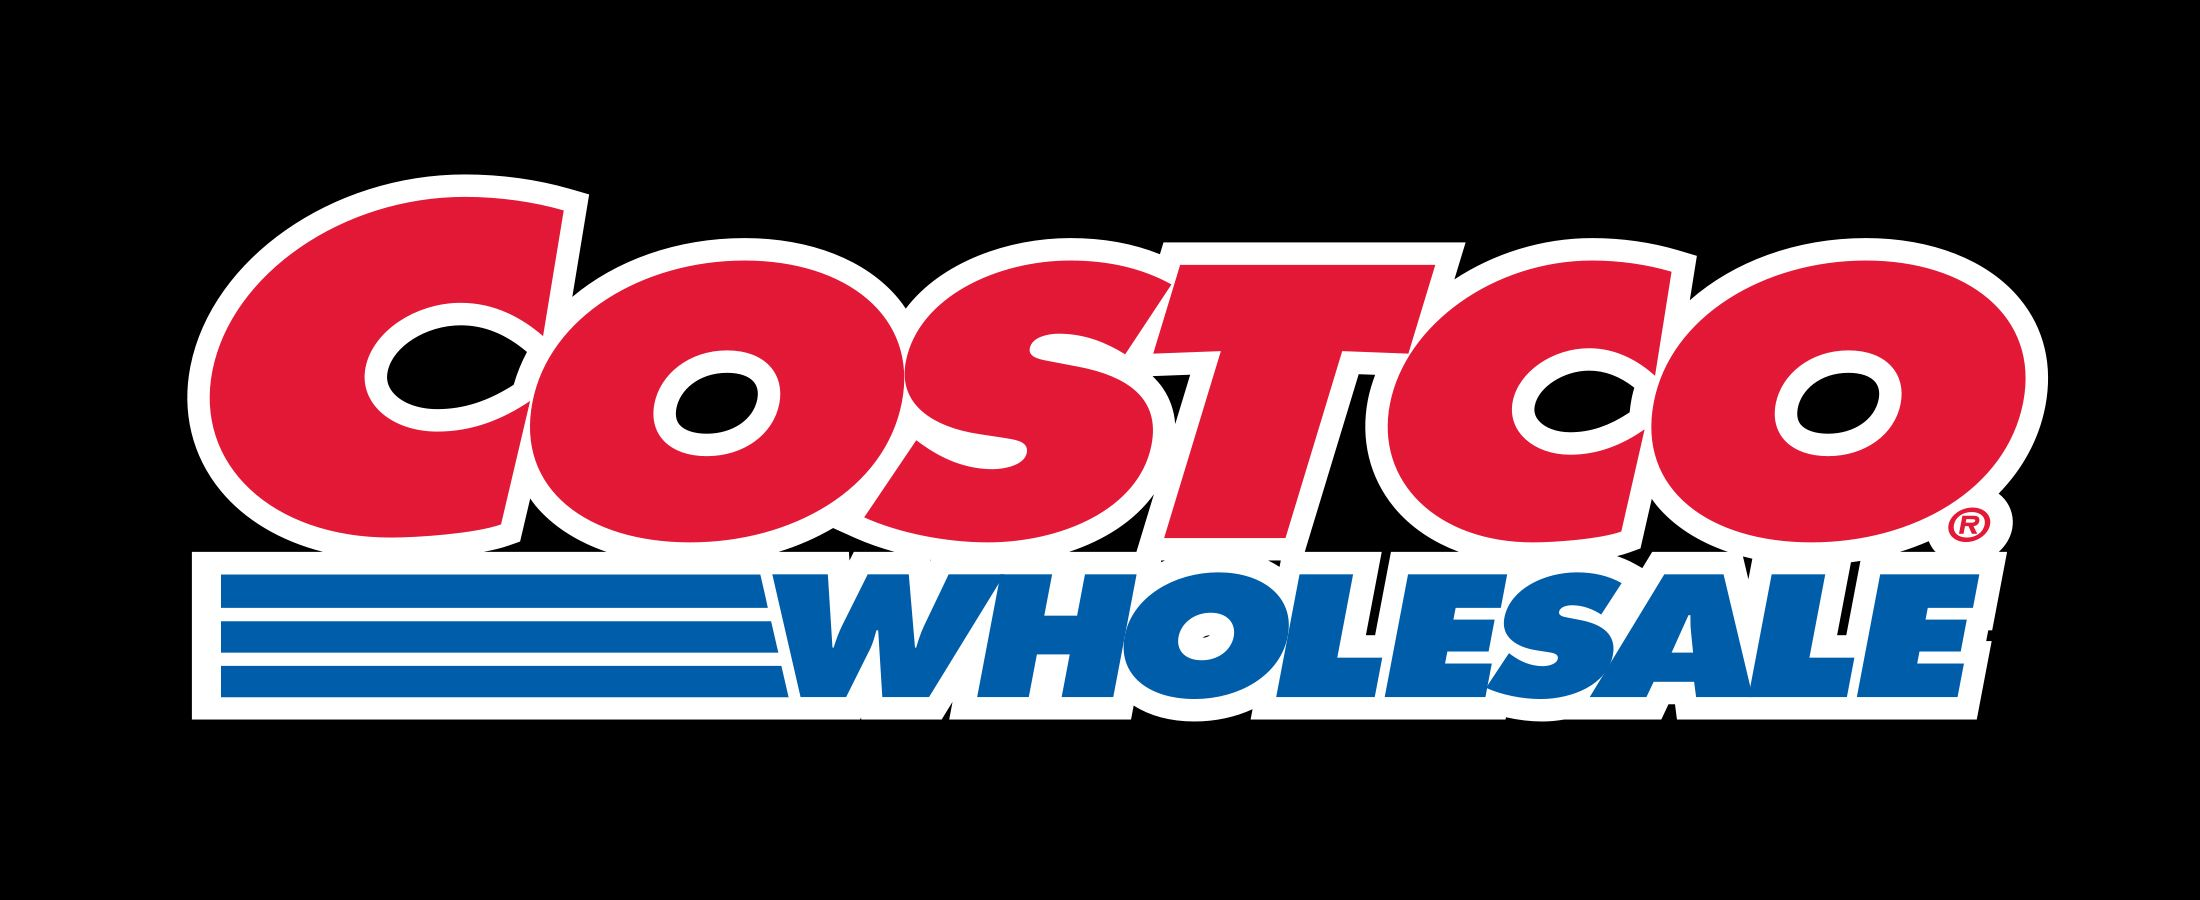 Costco Logo - Costco Logo, Costco Symbol, Meaning, History and Evolution